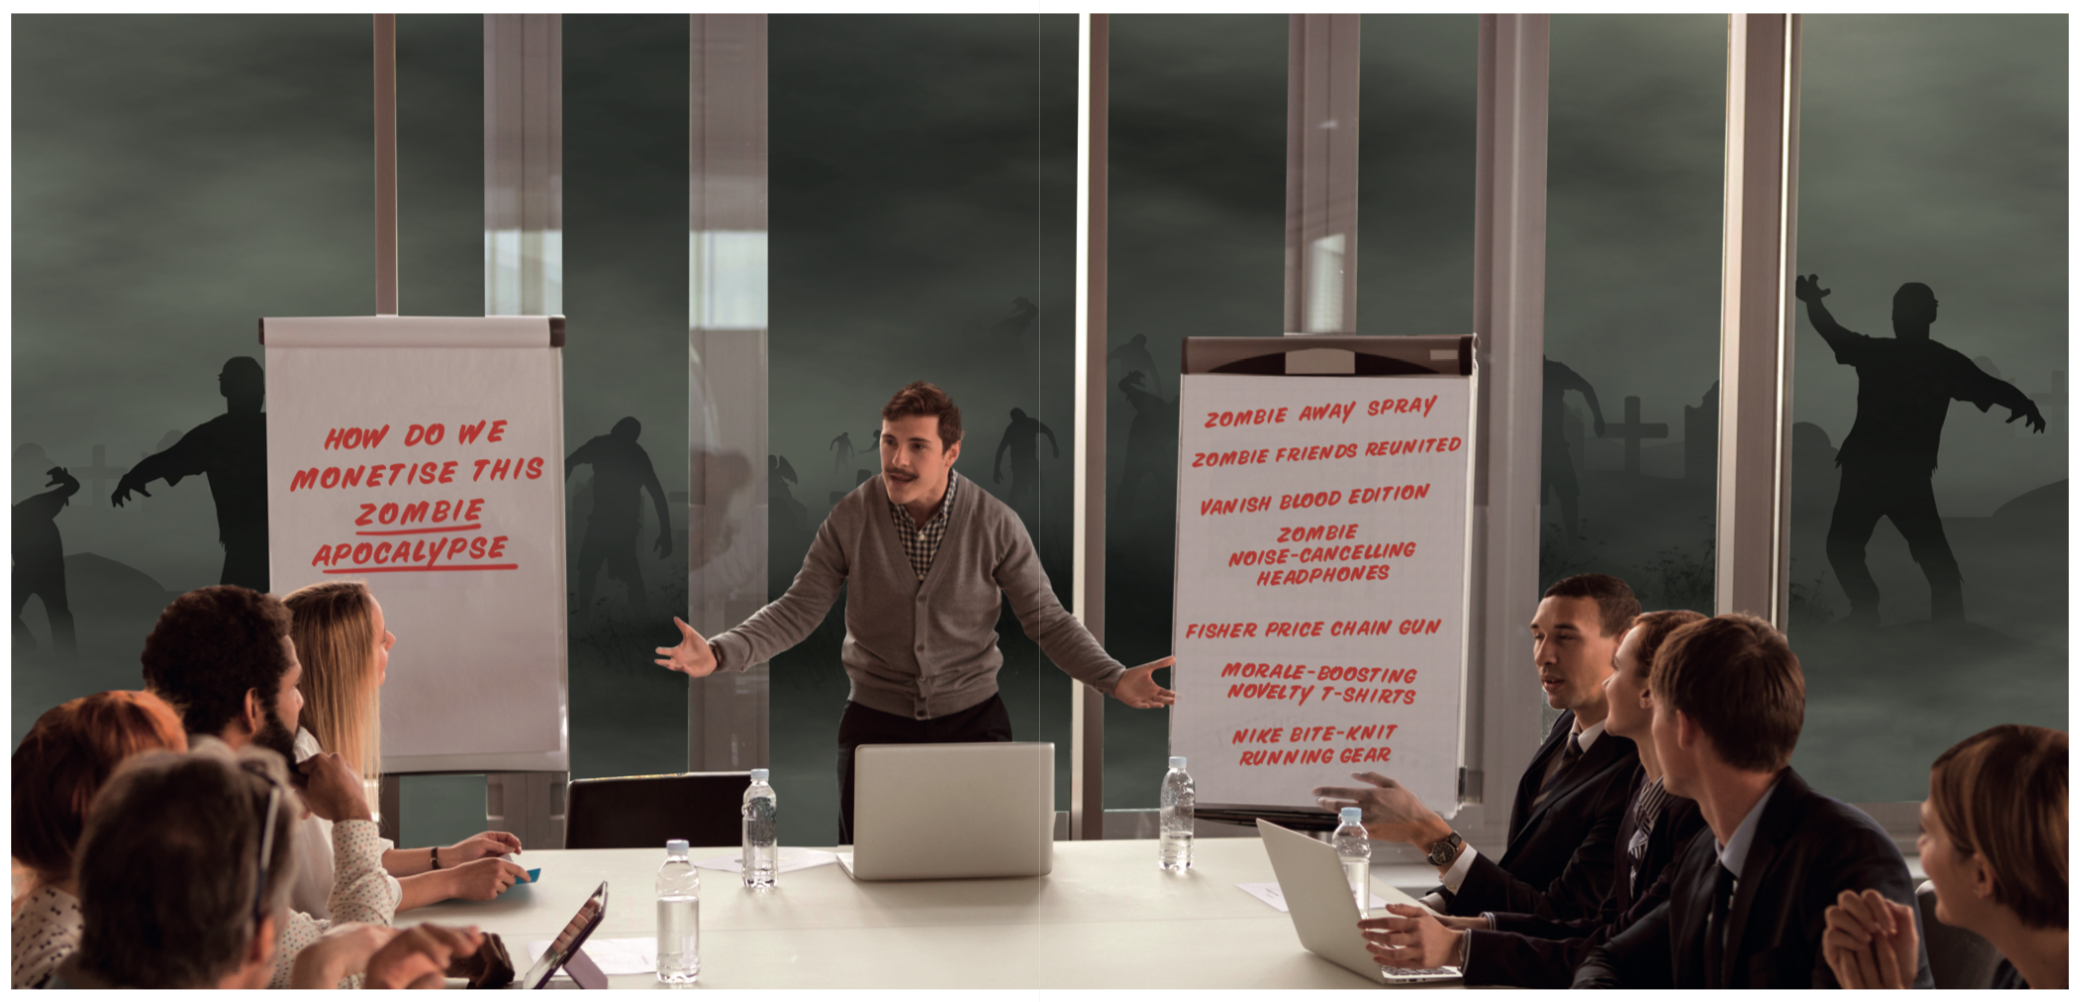 END of the world new product team - how do we monetise this ZOmBIE APOCALYPSE?